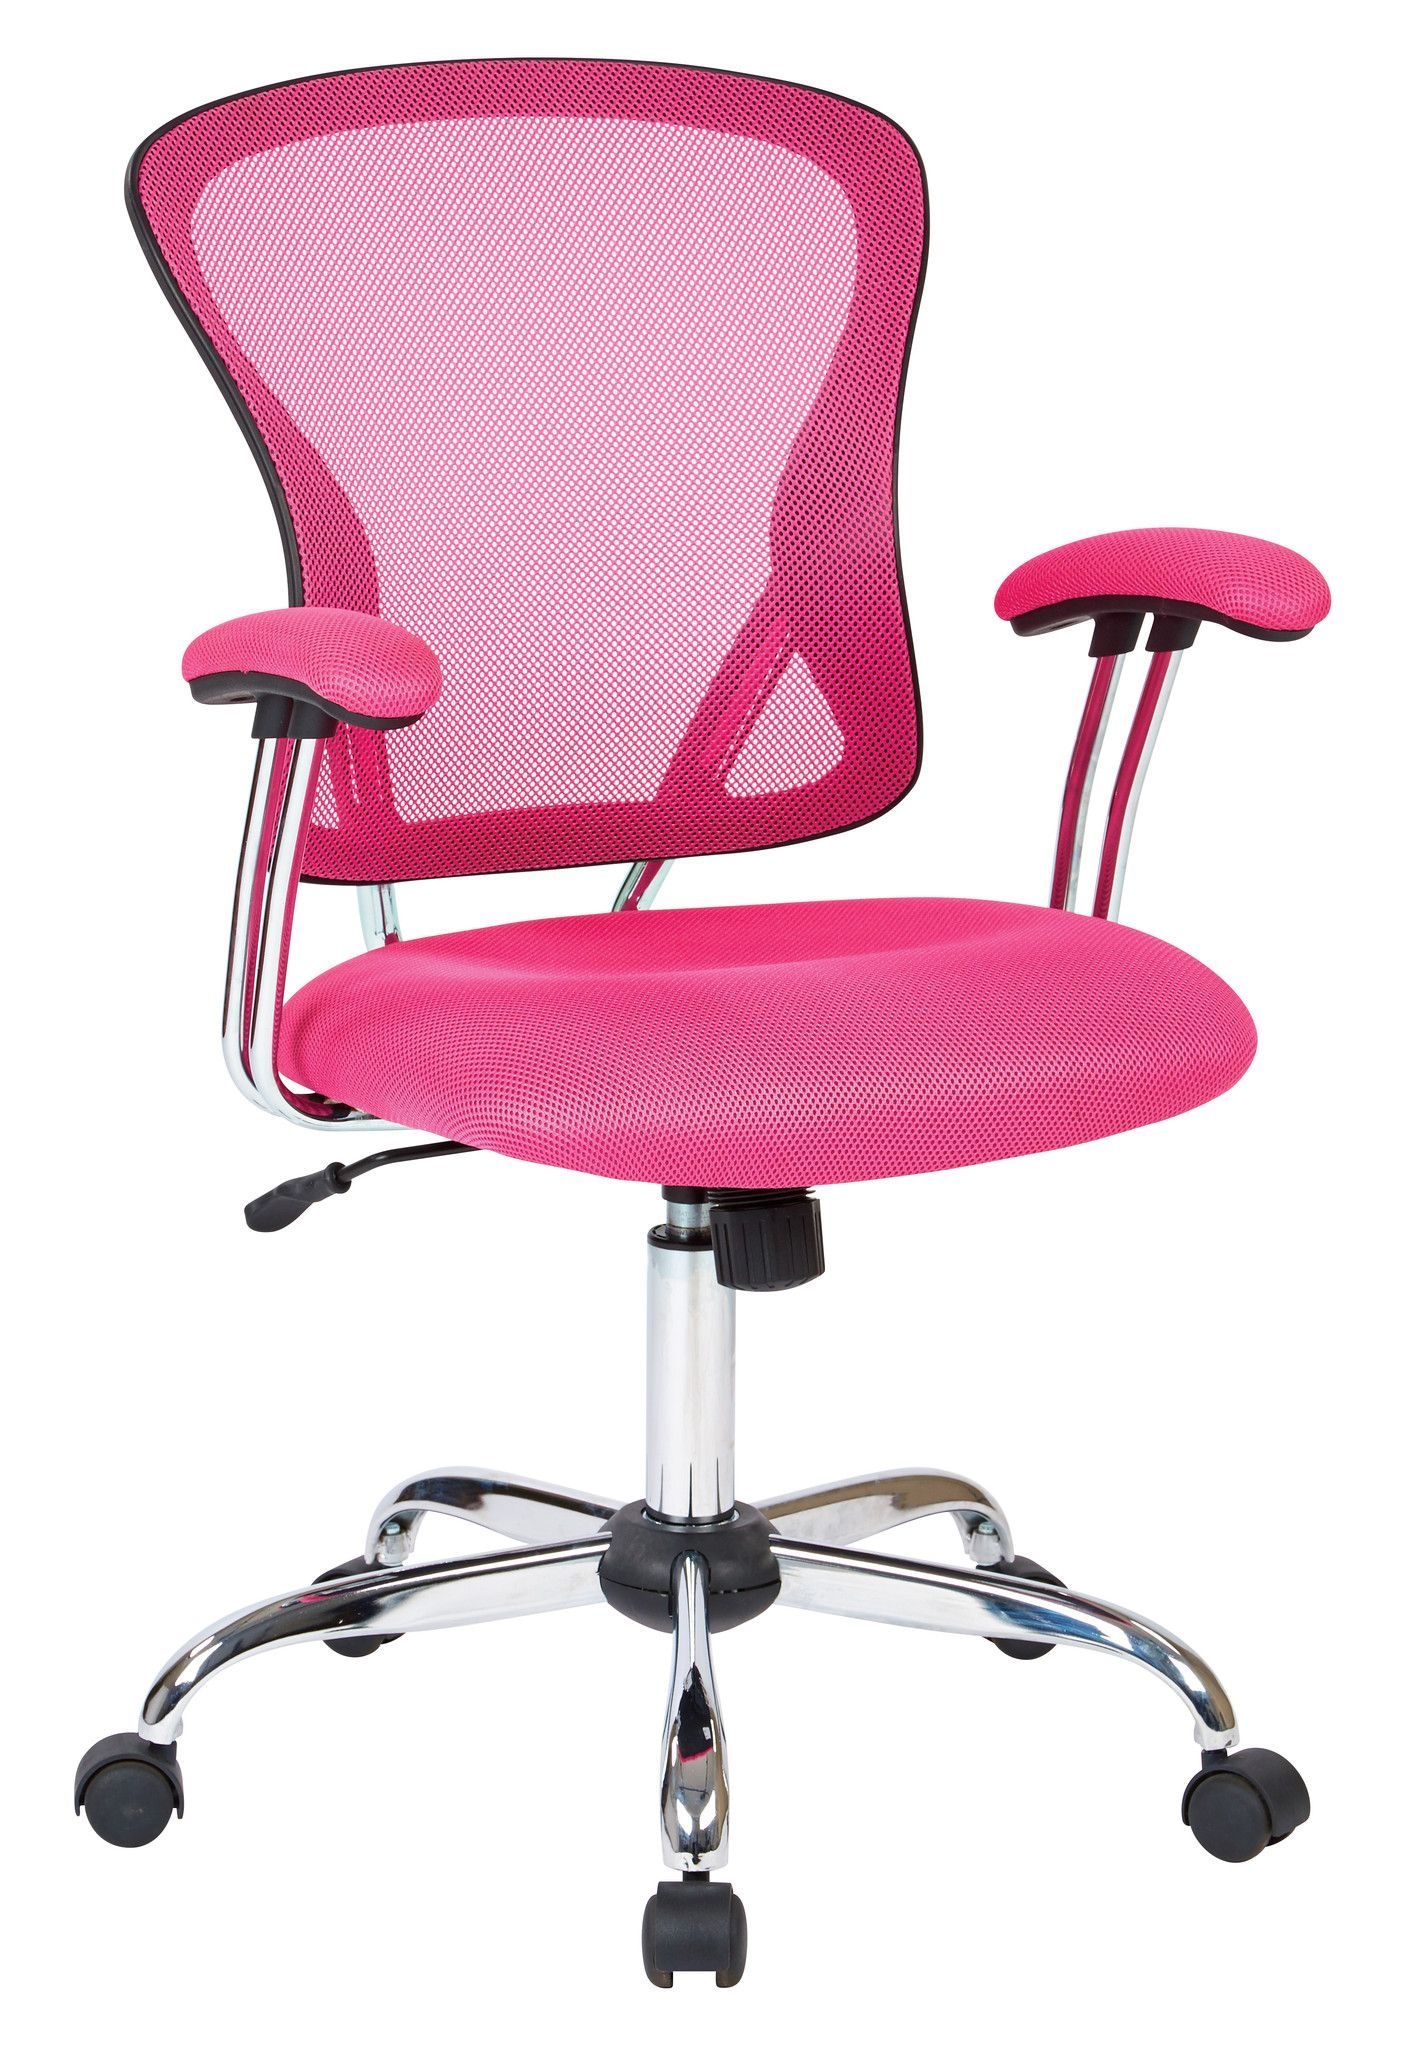 Office chairs are pretty expensive but I would need